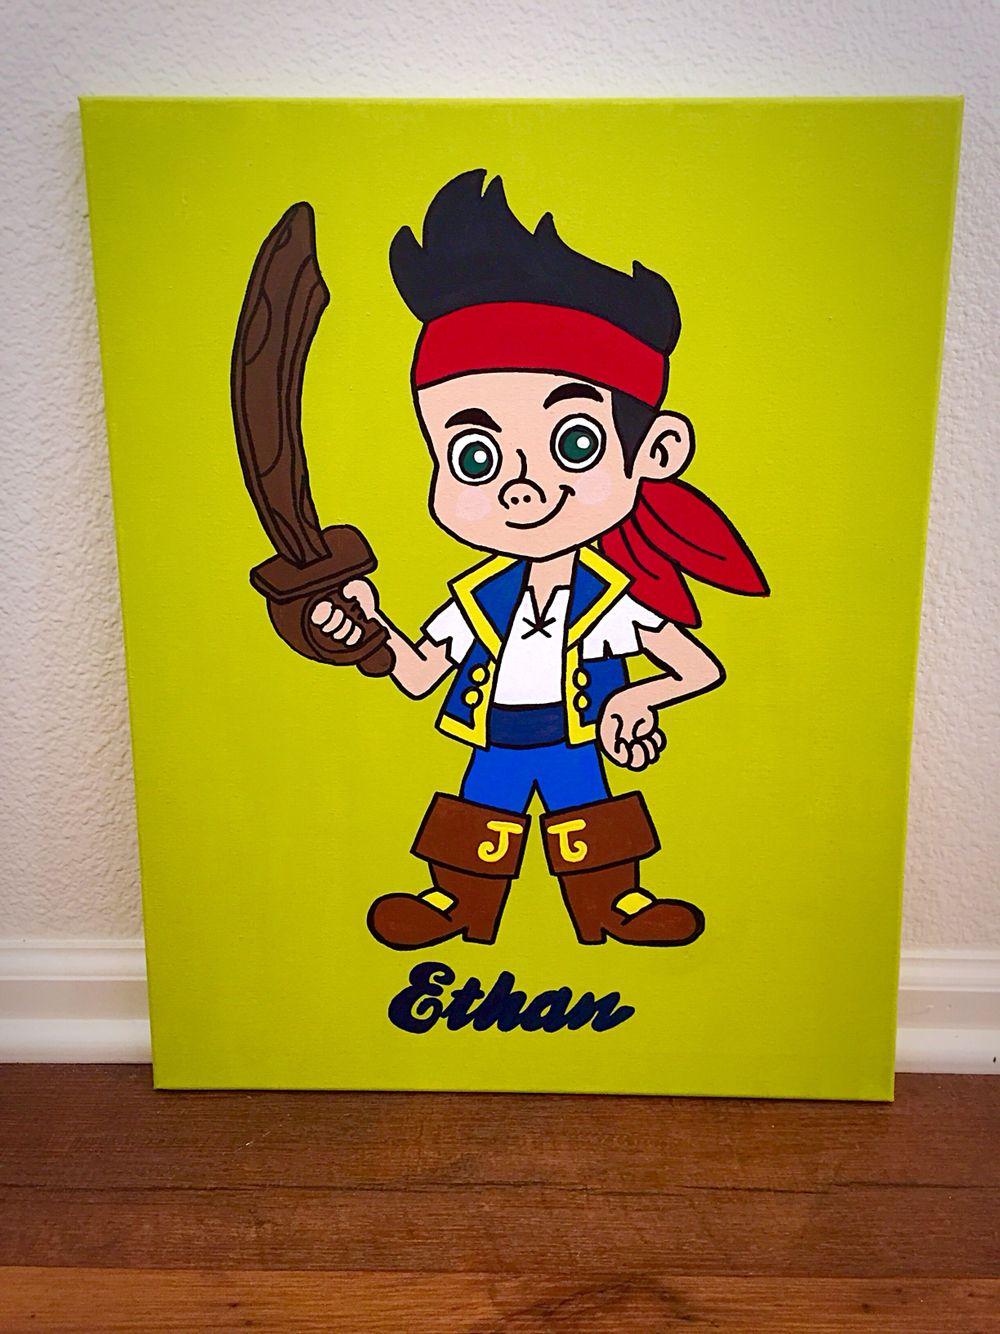 jake & the neverland pirates | Drawings and canvas | Pinterest ...